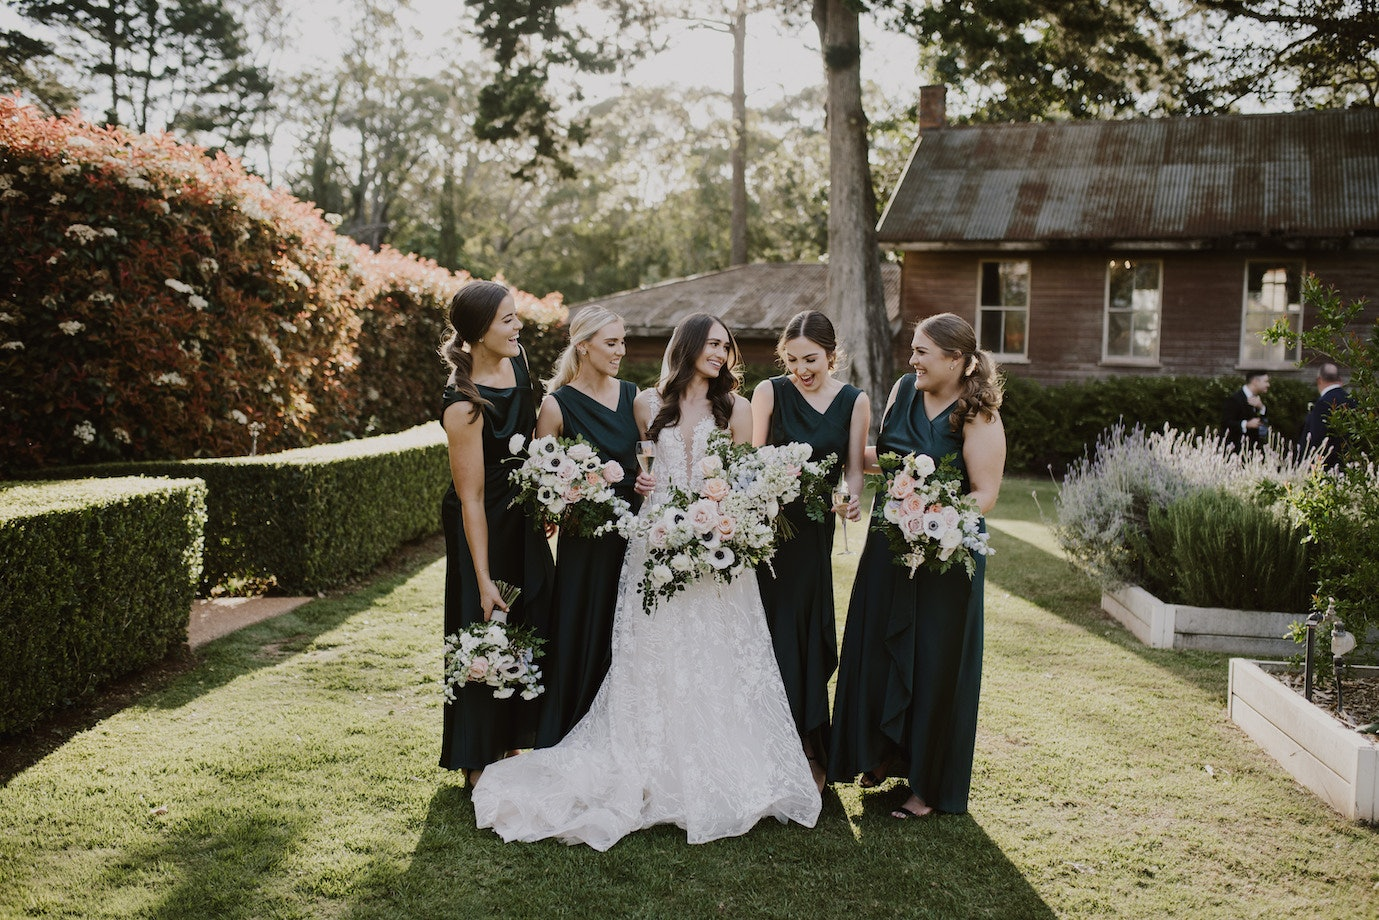 Bride standing between her bridesmaids all holding bouquets